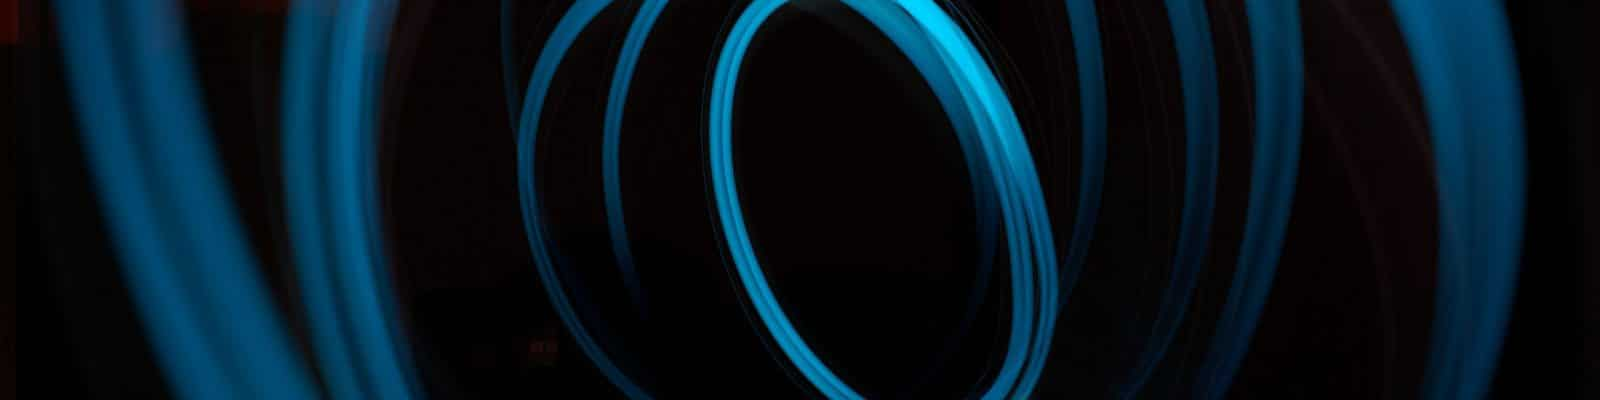 why is my internet slow blog post cover image - black with blue swirling fiber optics